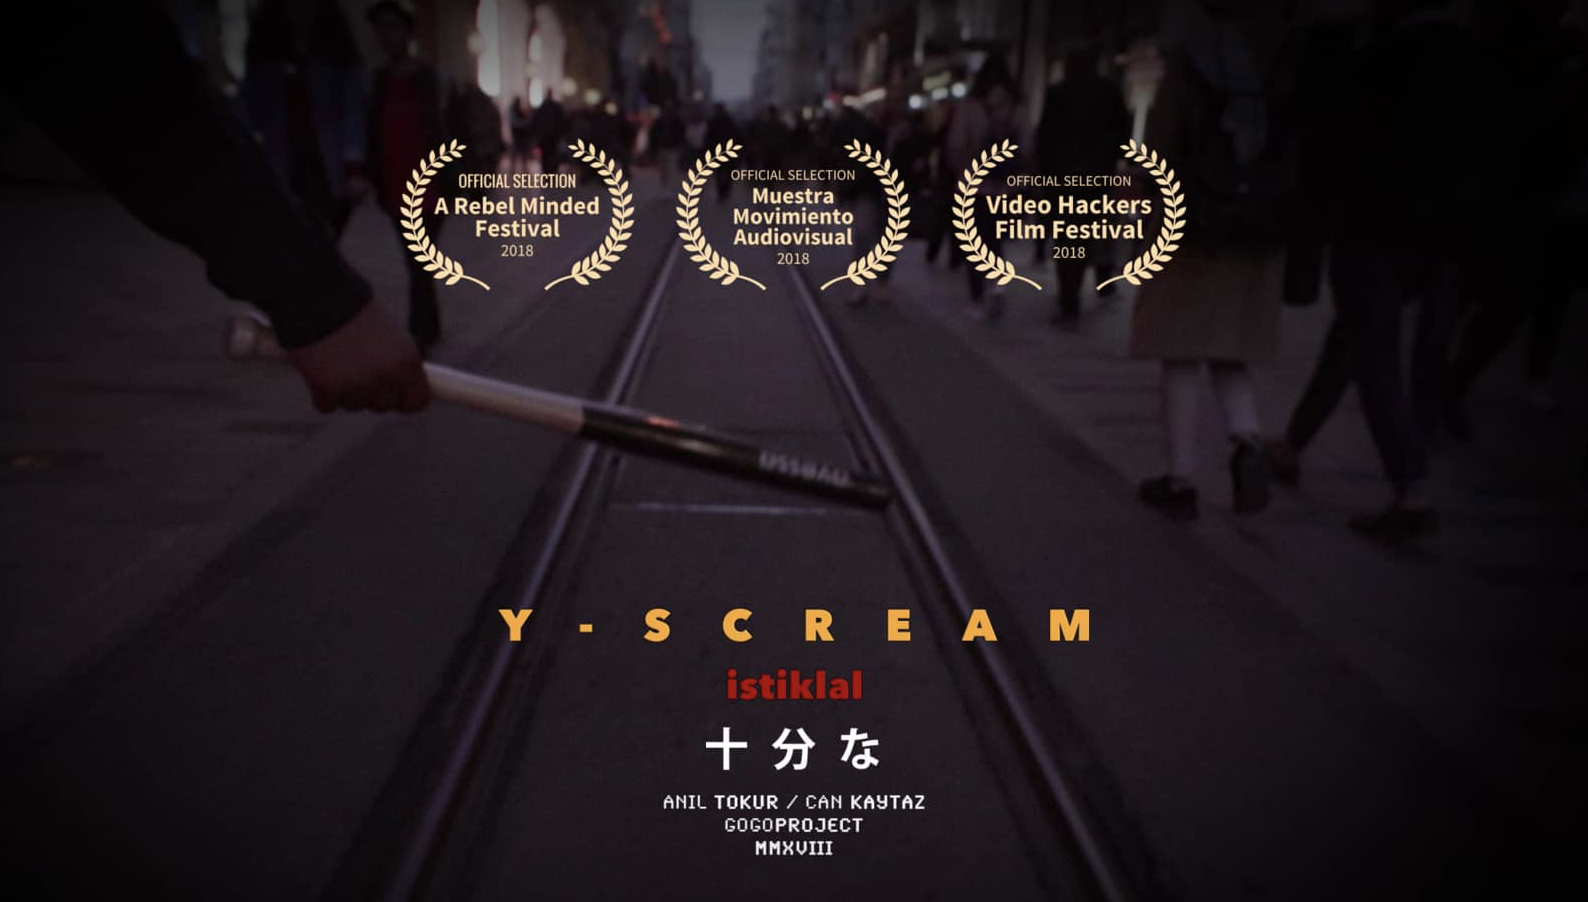 Y - Scream Istiklal